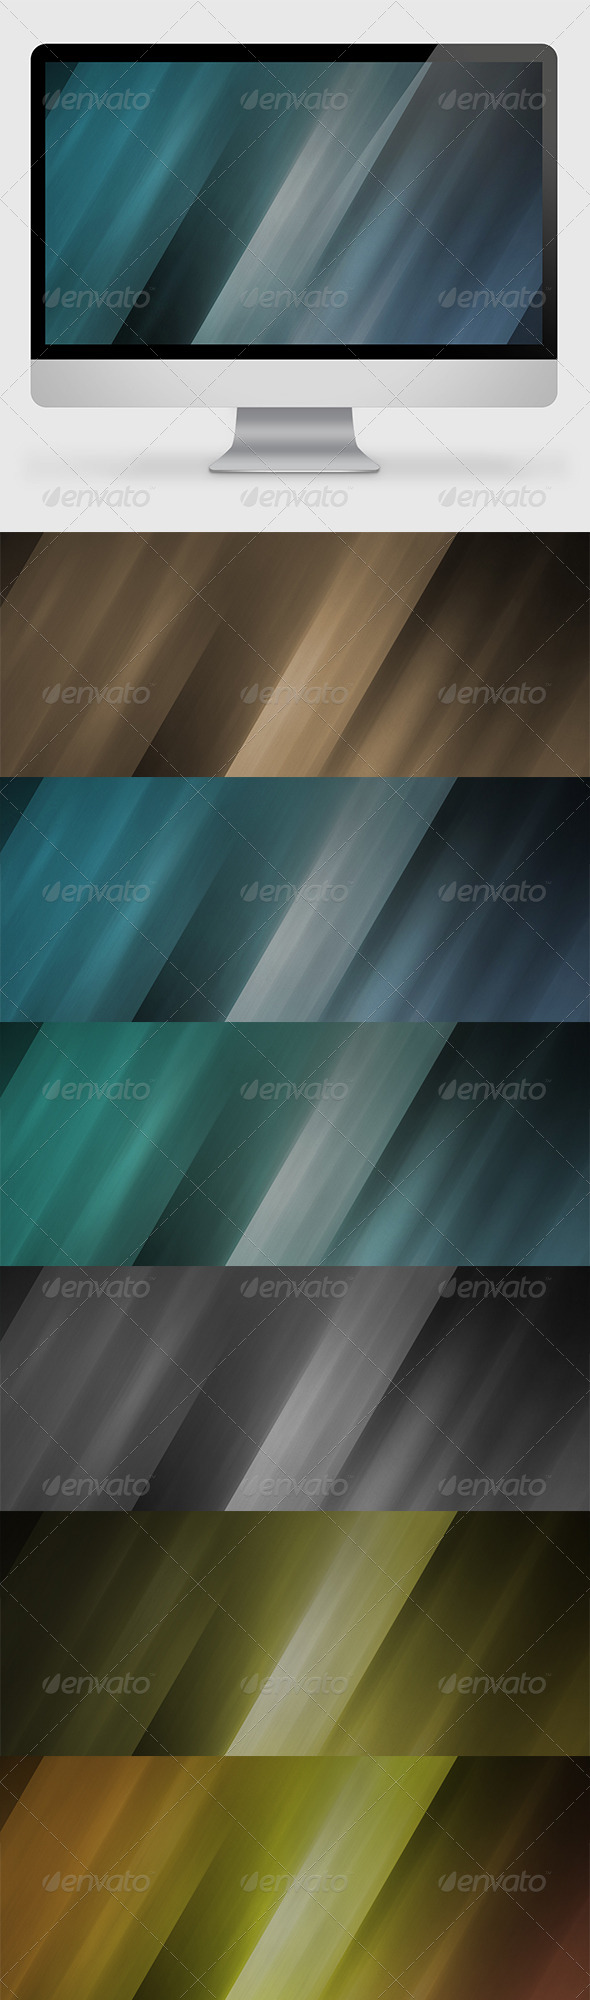 Abstract/Striped Backgrounds - Abstract Backgrounds